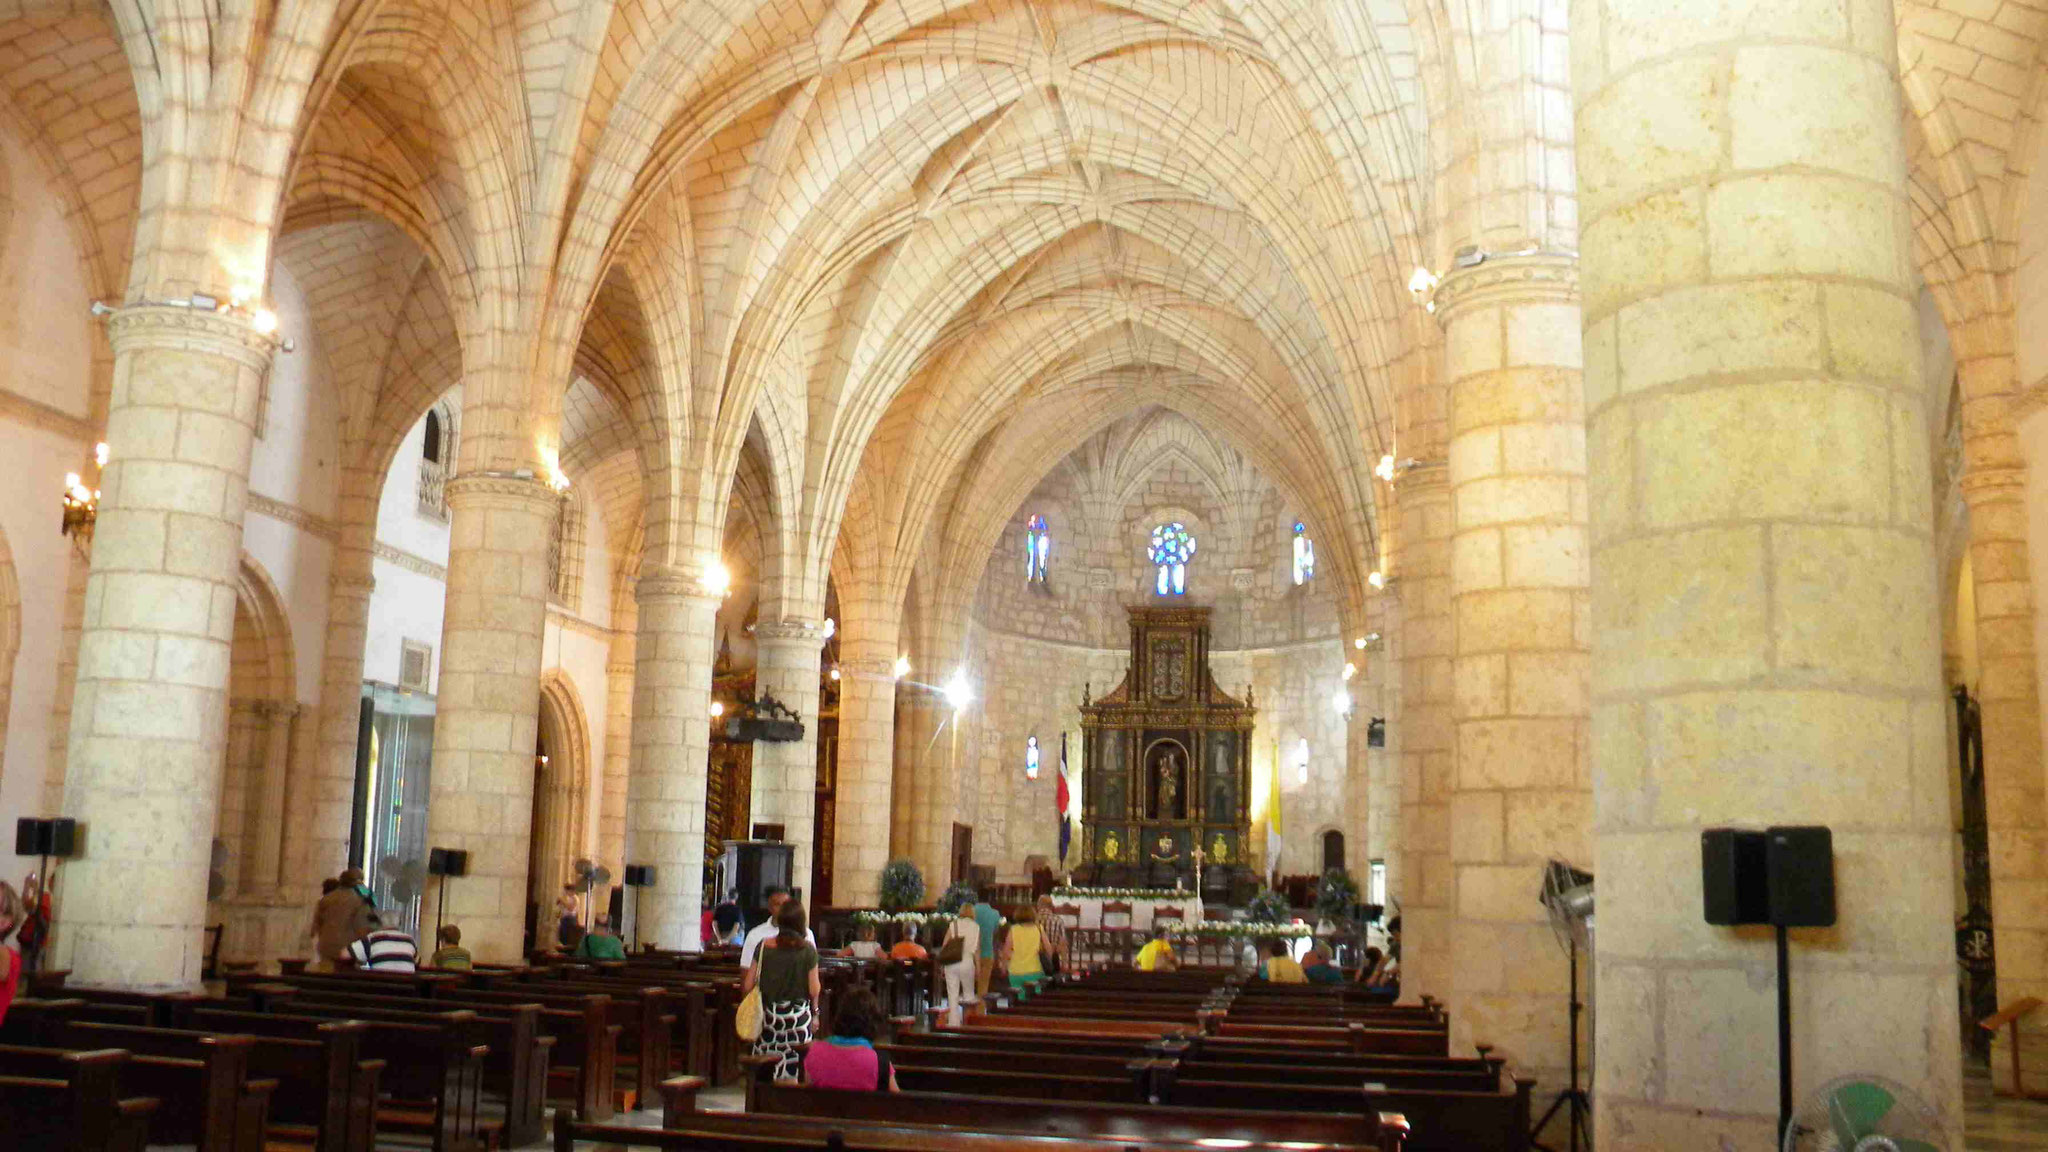 Catedral de Santa Maria la Menor in Santo Domingo